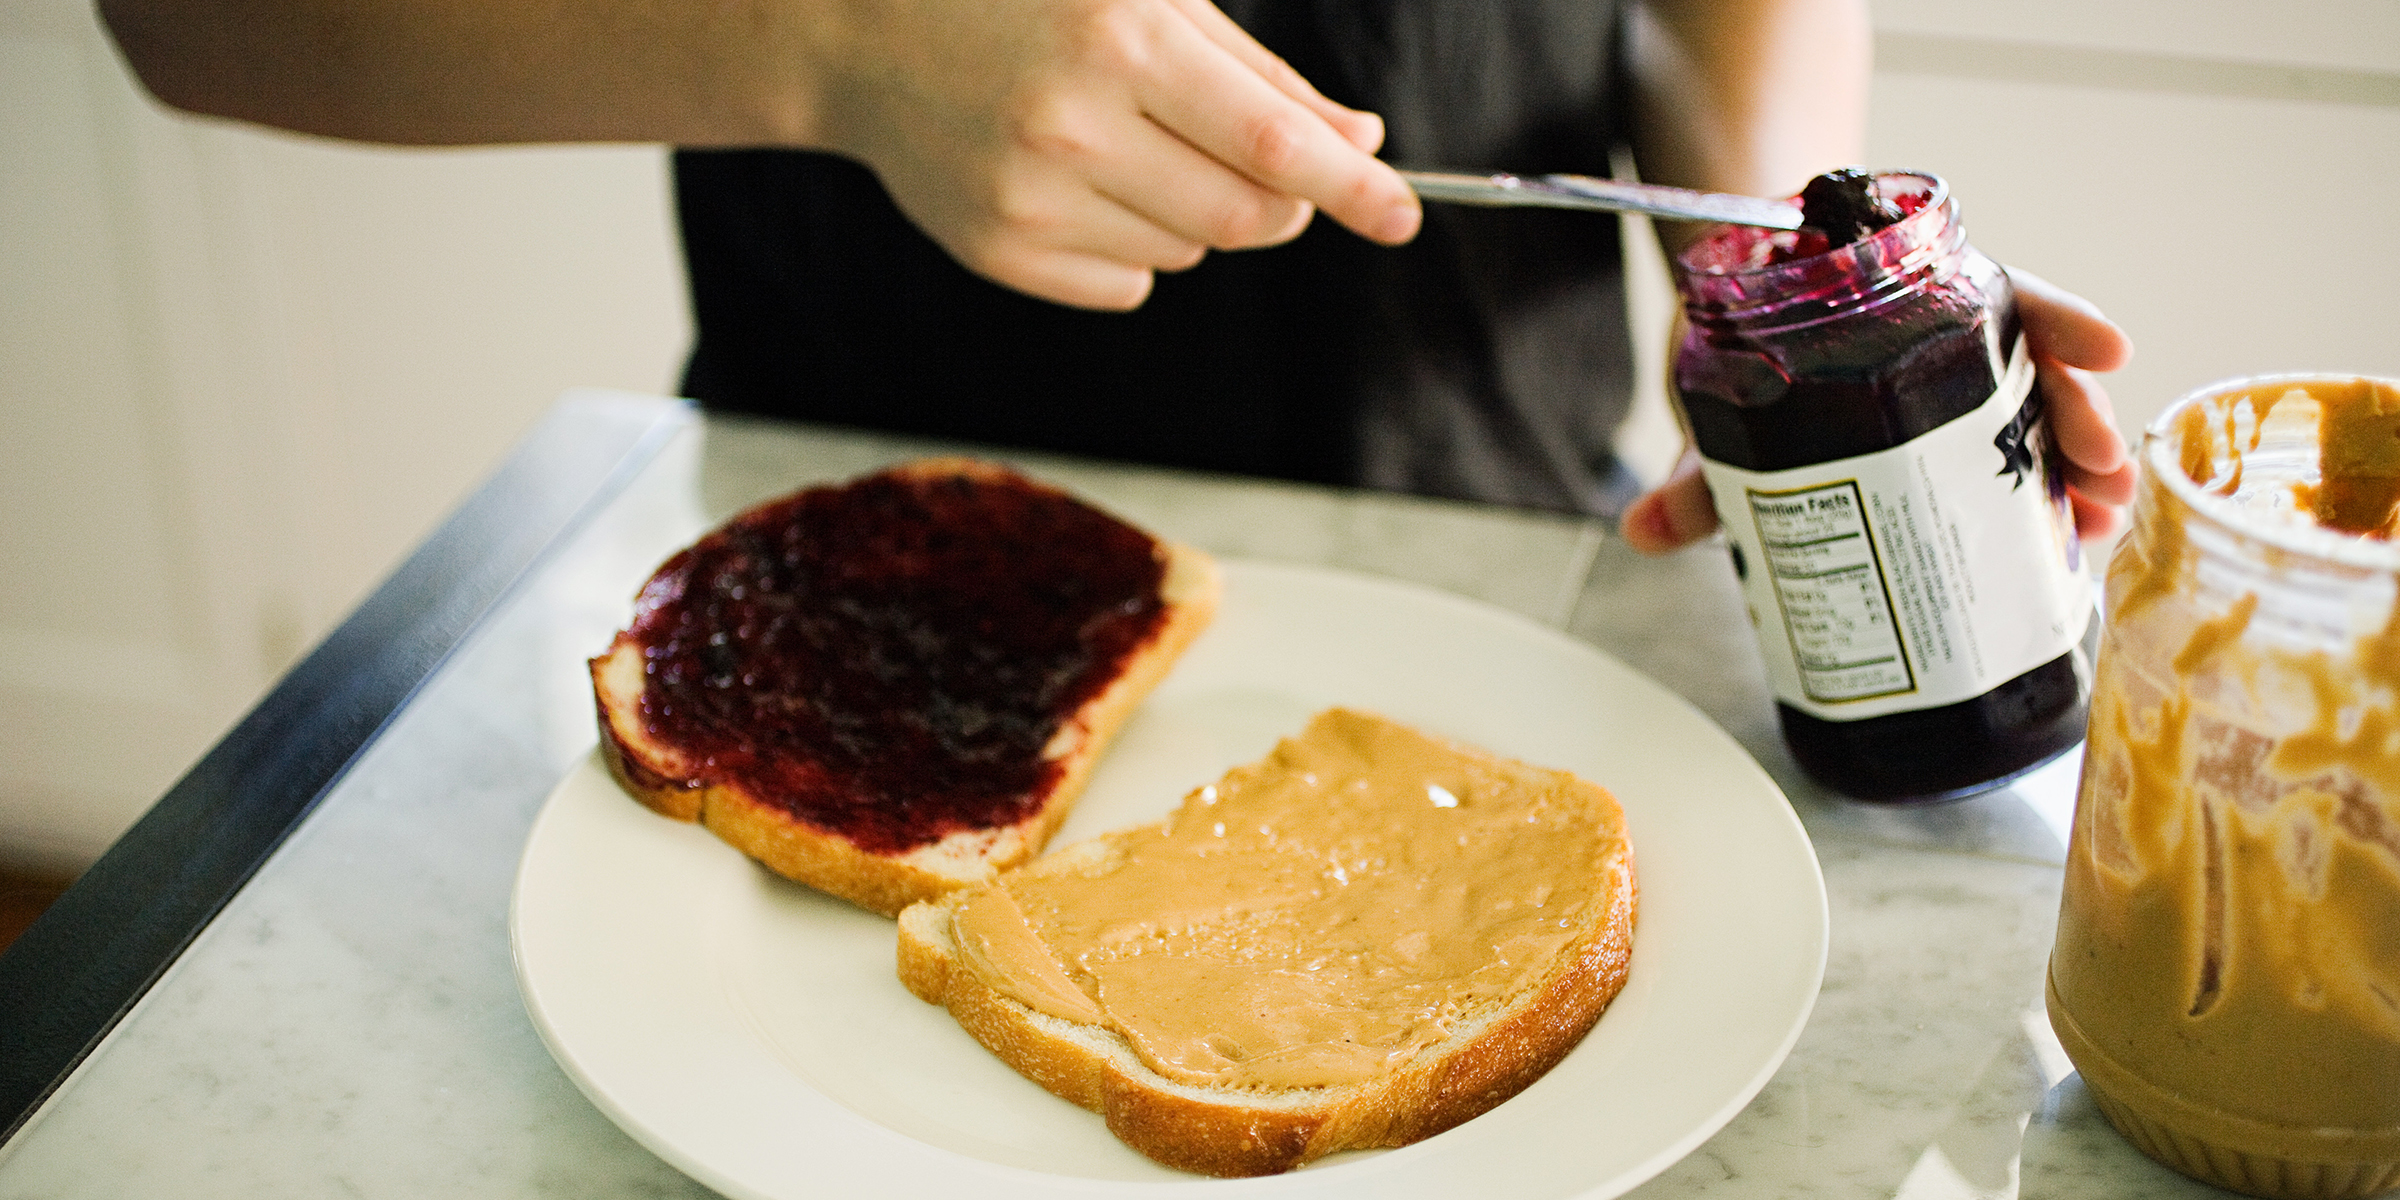 How to make a peanut butter and jelly: Is there a right way?